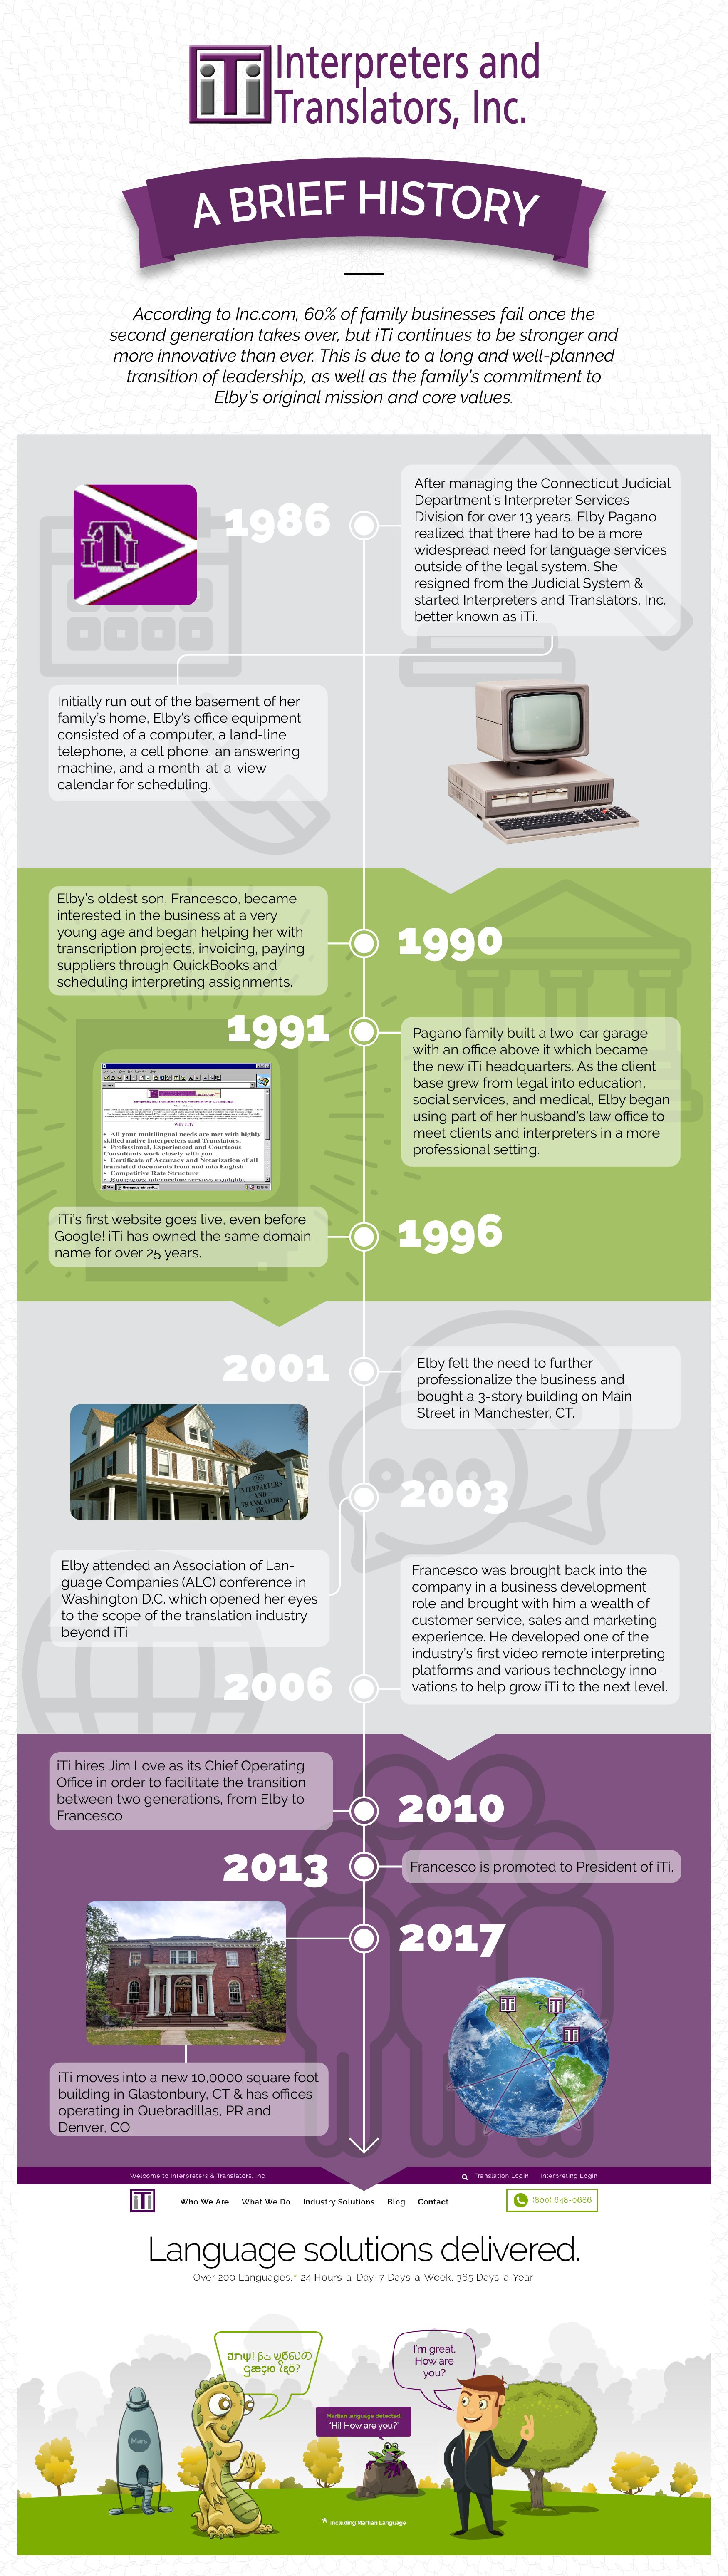 Info-graphic that details iTi's history